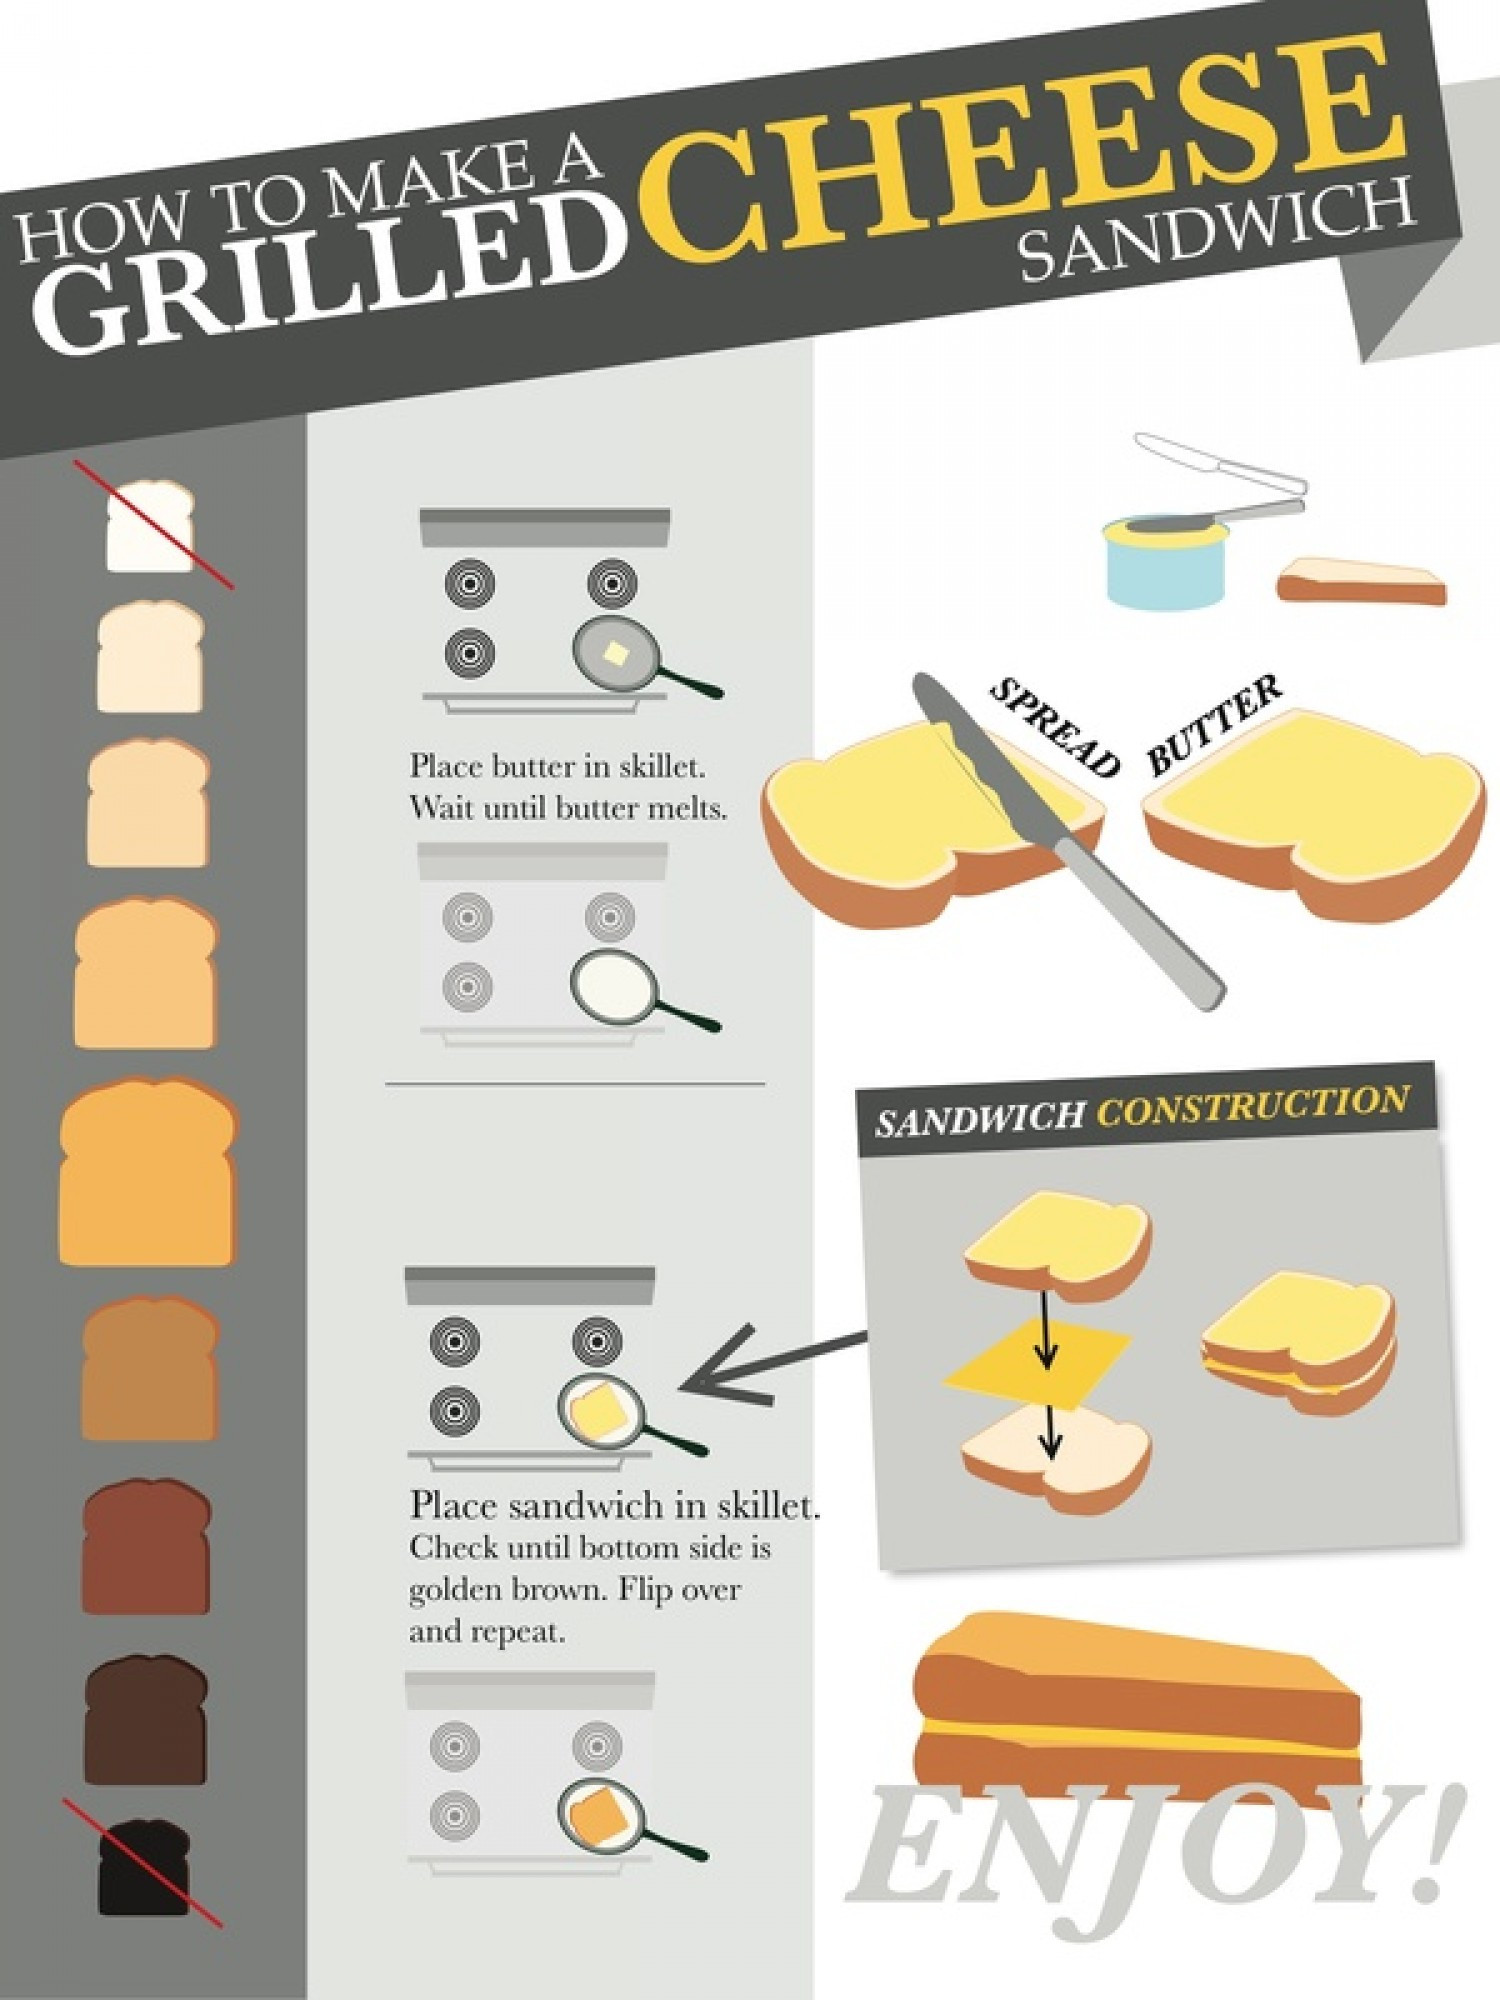 How to make a grilled cheese sandwich  Infographic